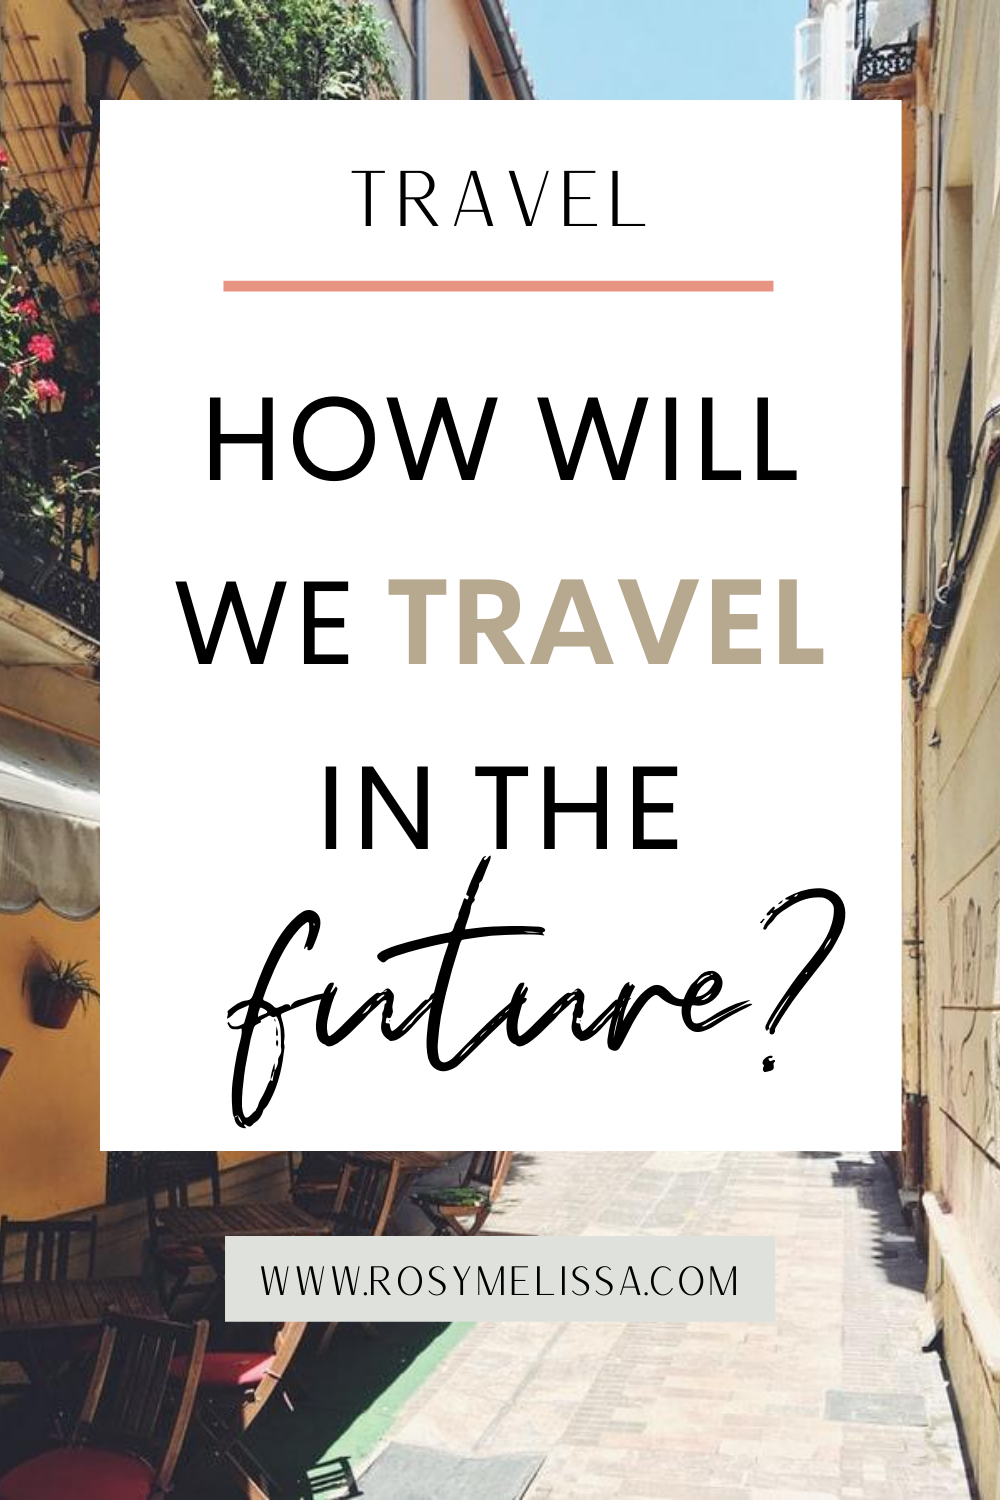 a vision on the future of travel, how will we travel in the future, travel tips, travel inspiration